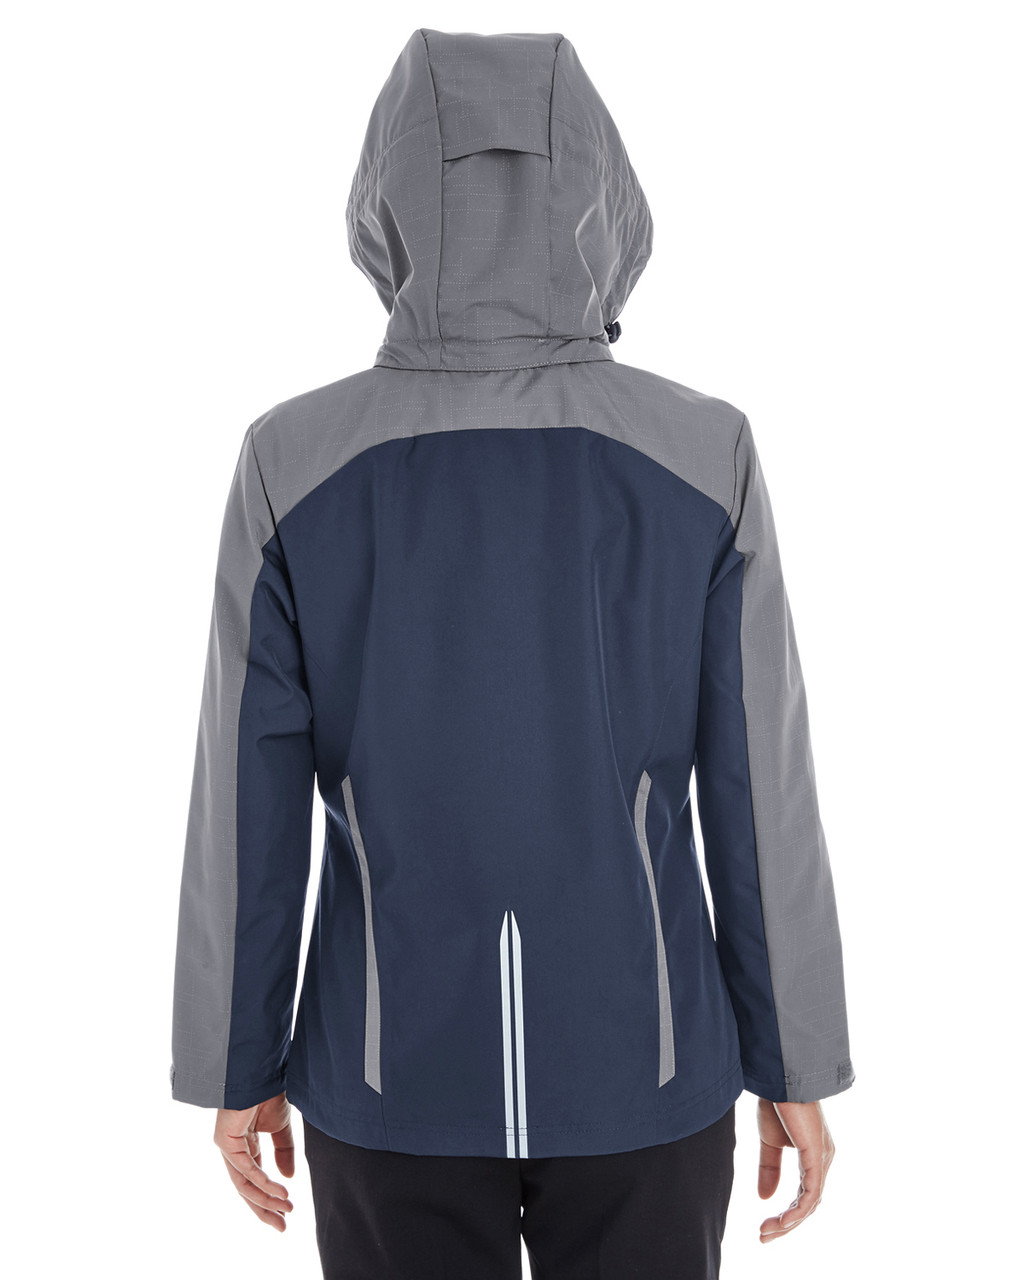 Navy/Graphite/Graphite - BACK - NE700W Ash City - North End Ladies' Embark Colorblock Interactive Shell Jacket with Reflective Printed Panels | Blankclothing.ca